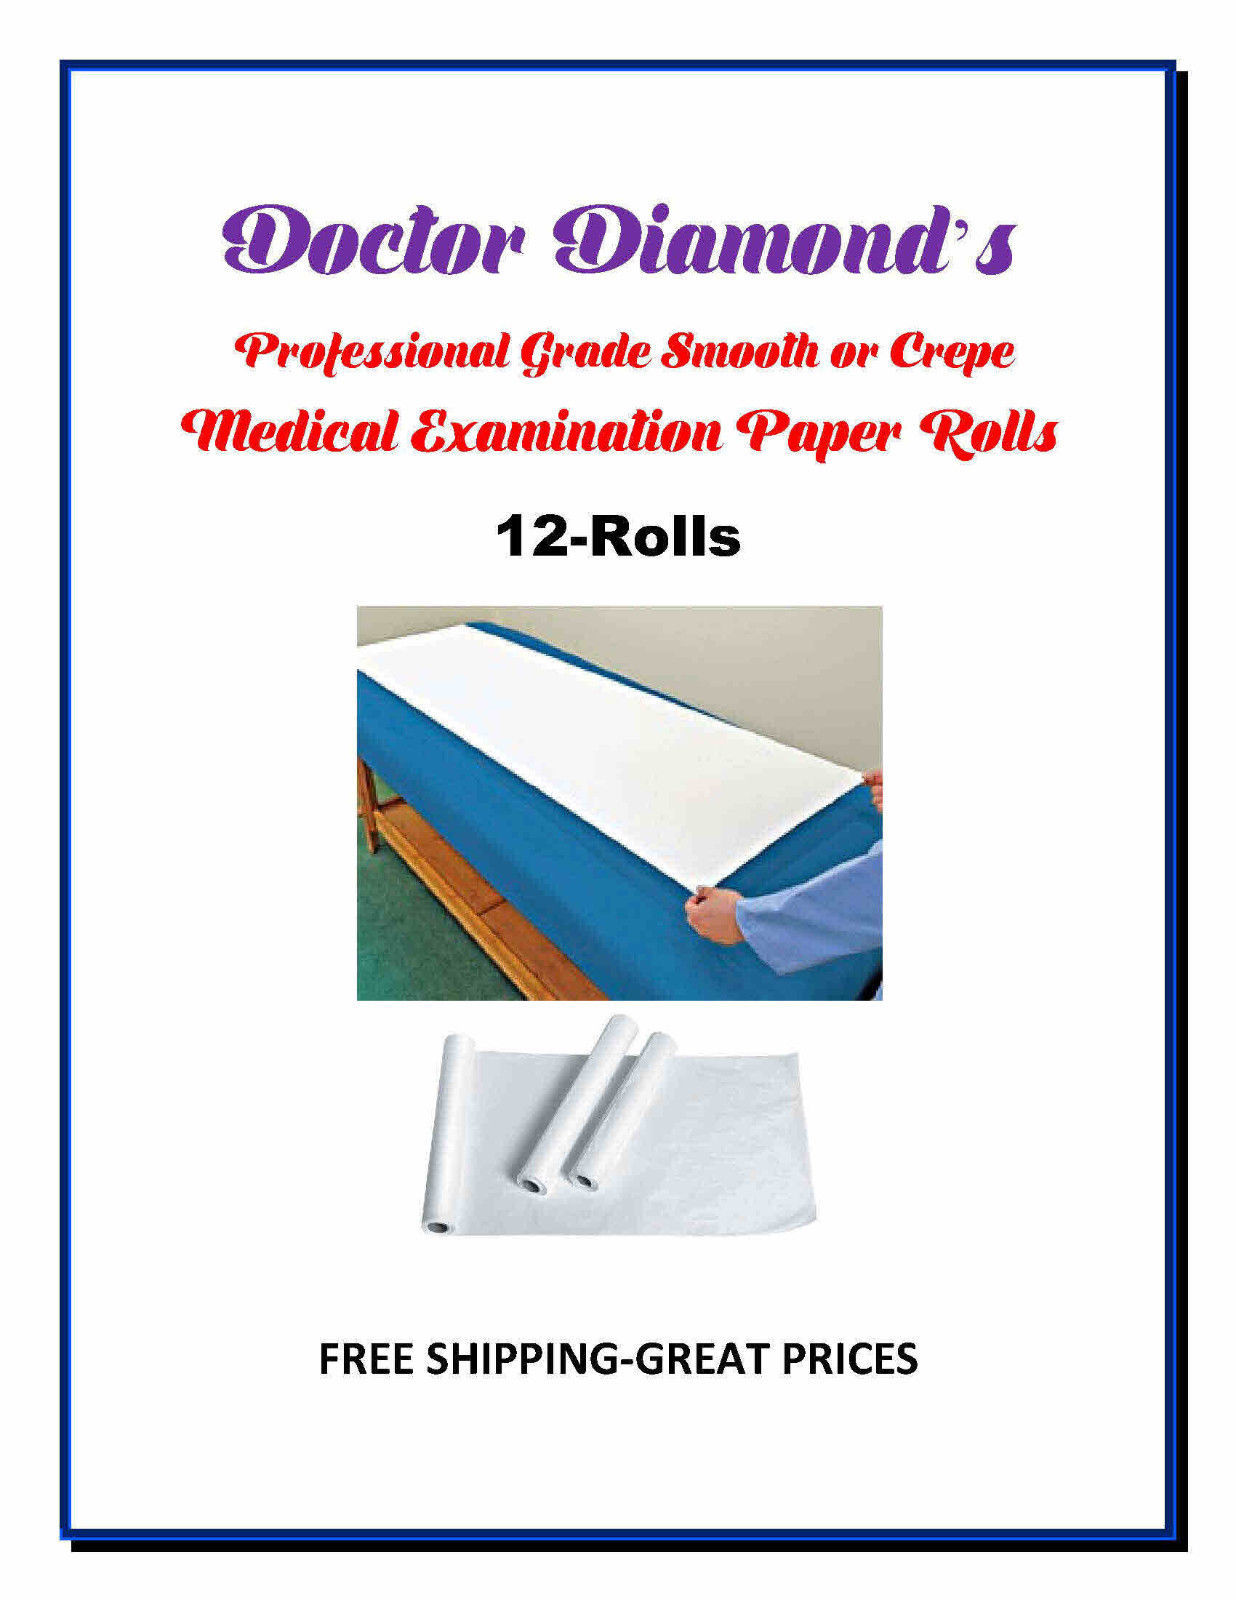 Dr.Diamonds Exam Table Paper 12 Rolls 225ft Smooth/125ft Crepe Rolls Low Price - $32.95 - $39.95